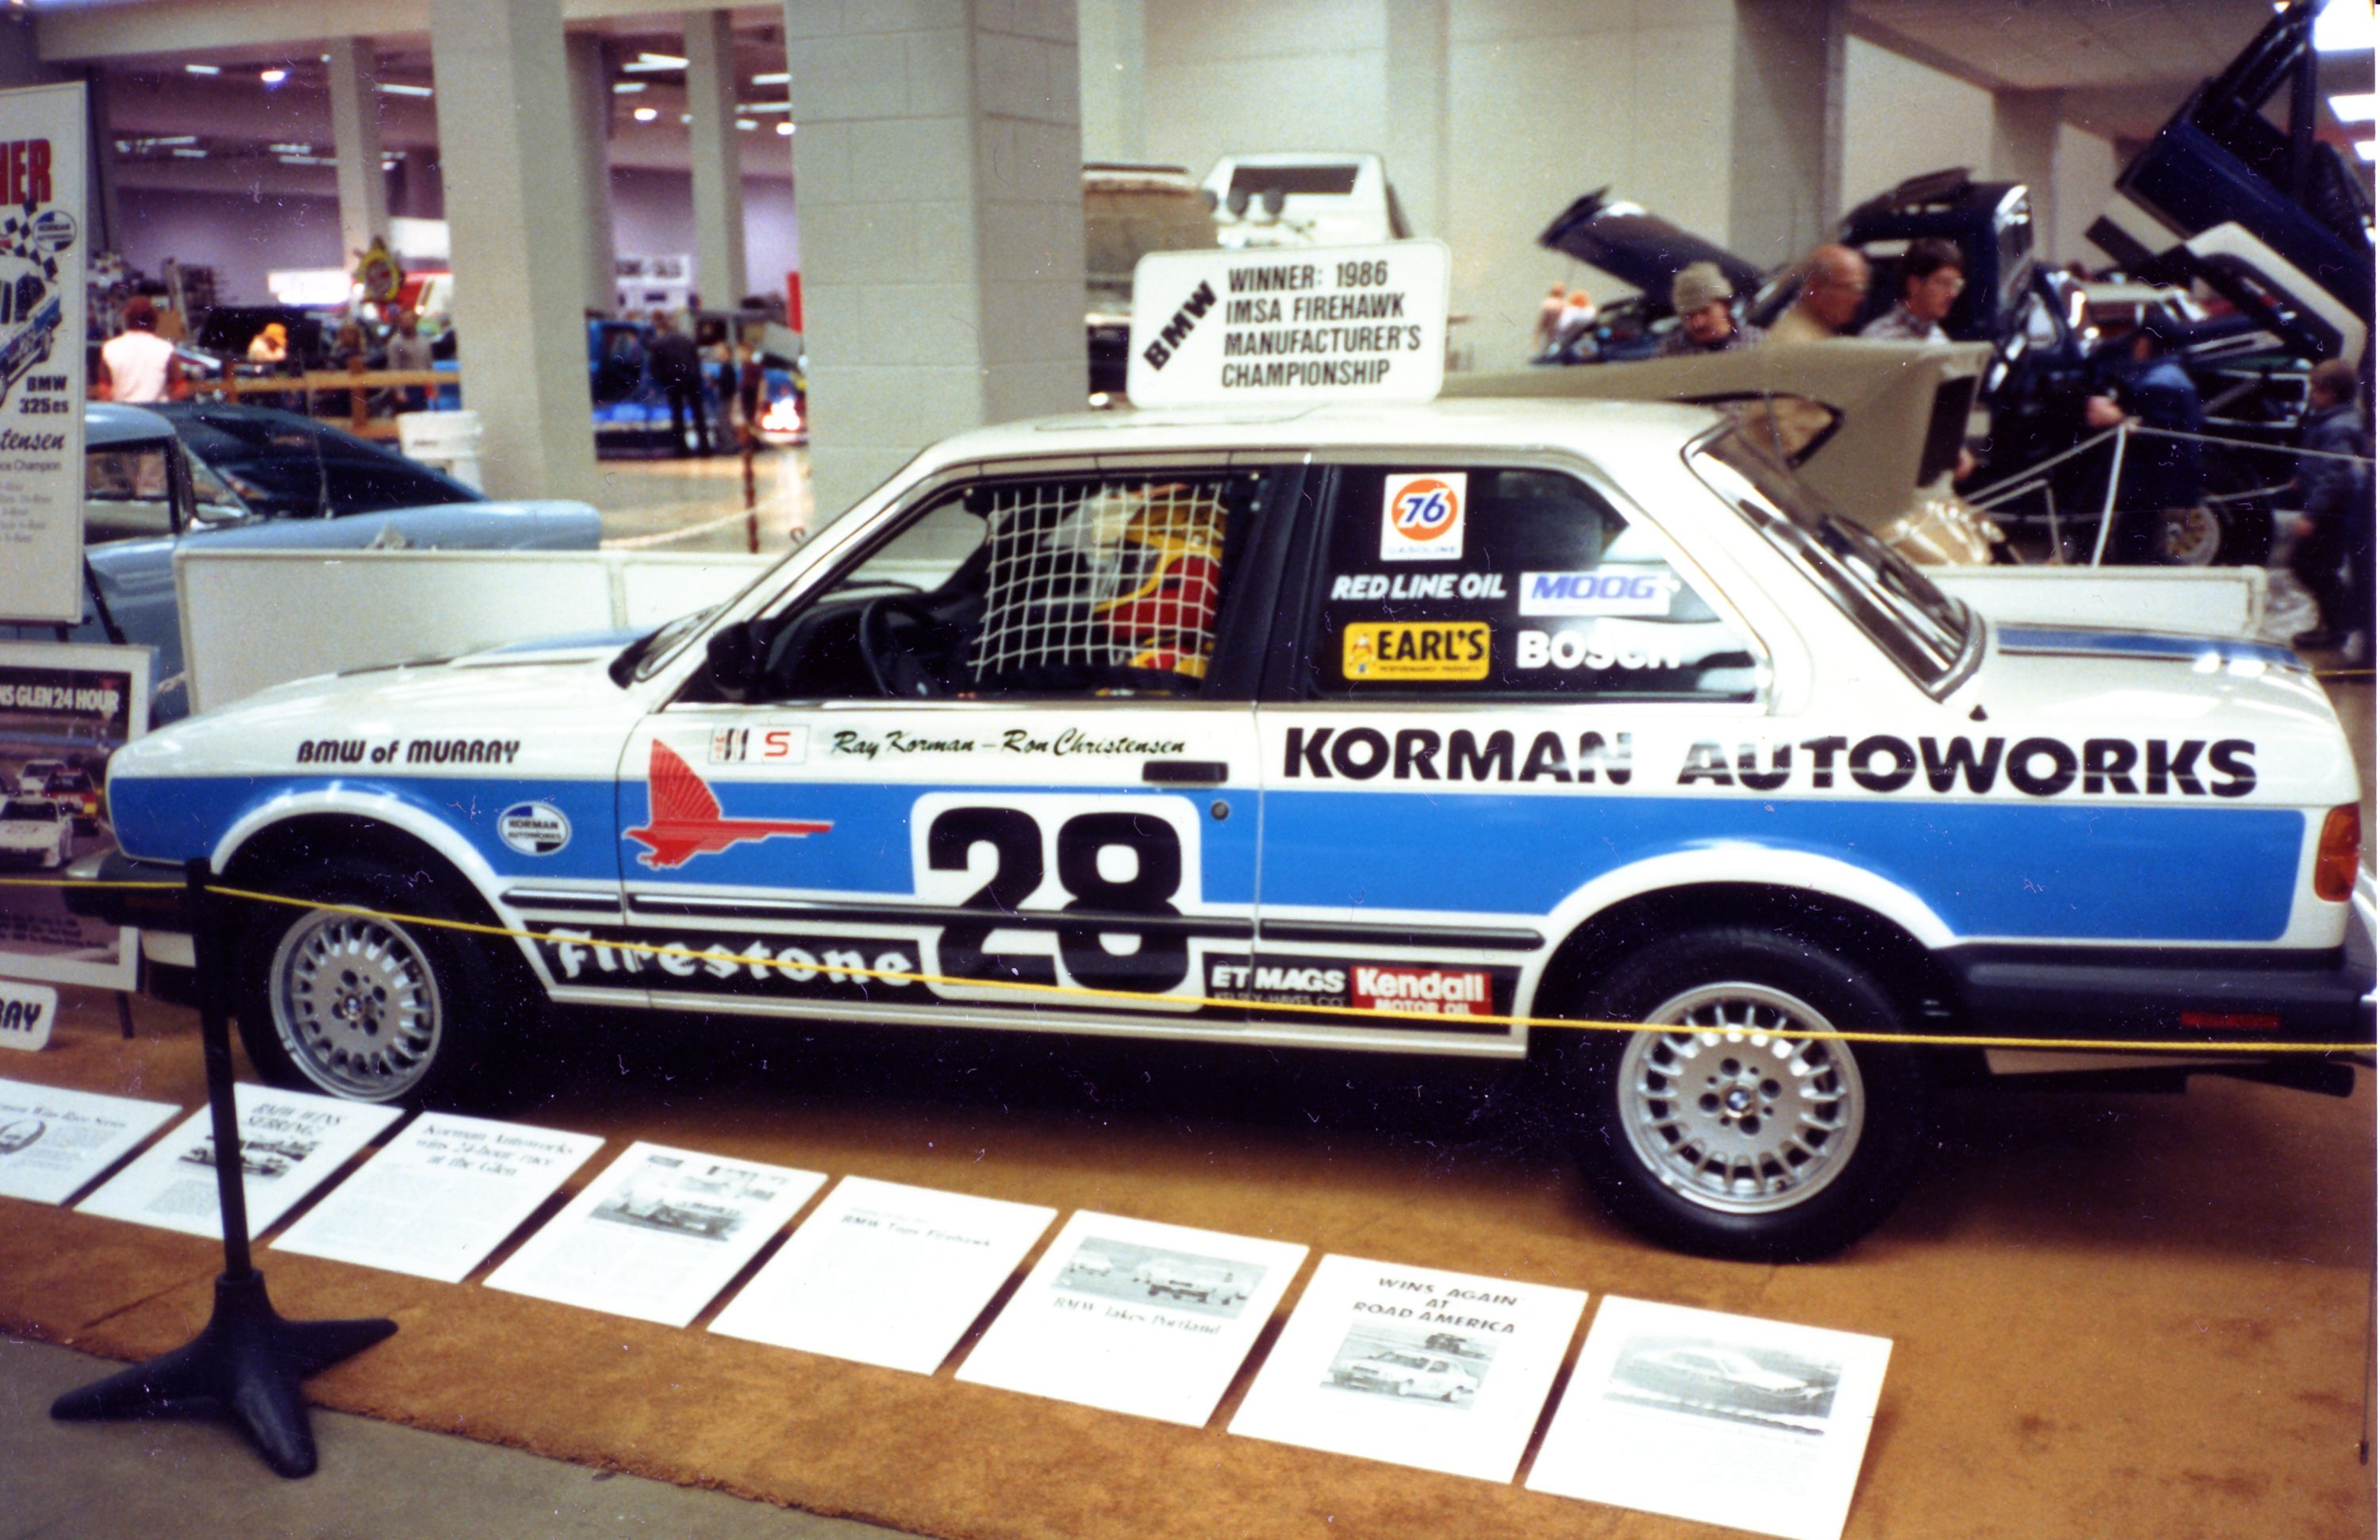 medium resolution of 1986 bmw 325e this was a clone of the korman race car that i made